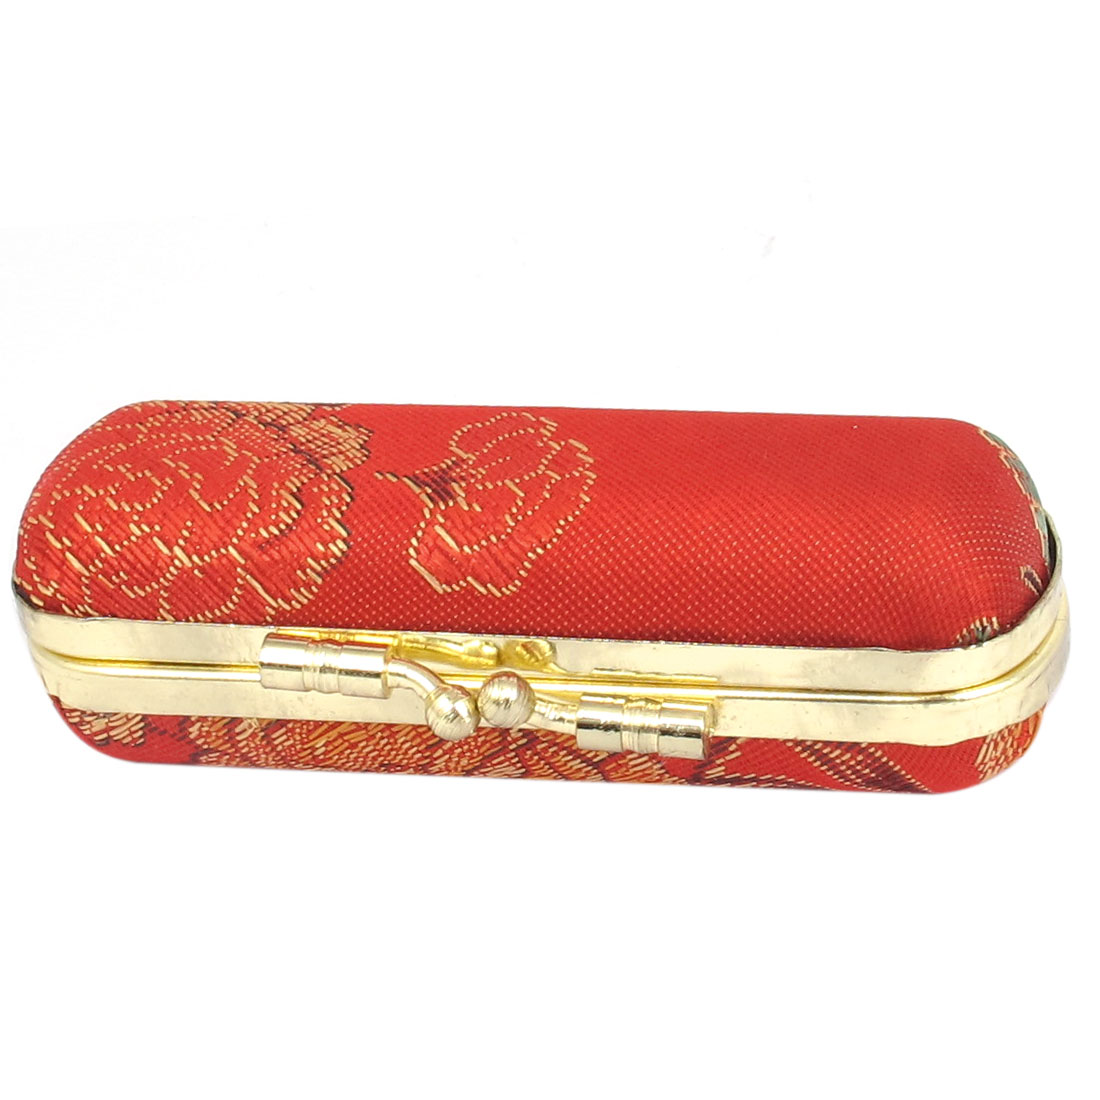 Women Kiss Lock Closure Flower Embroidered Mirror Lipstick Lip Chap Case Holder Box Red